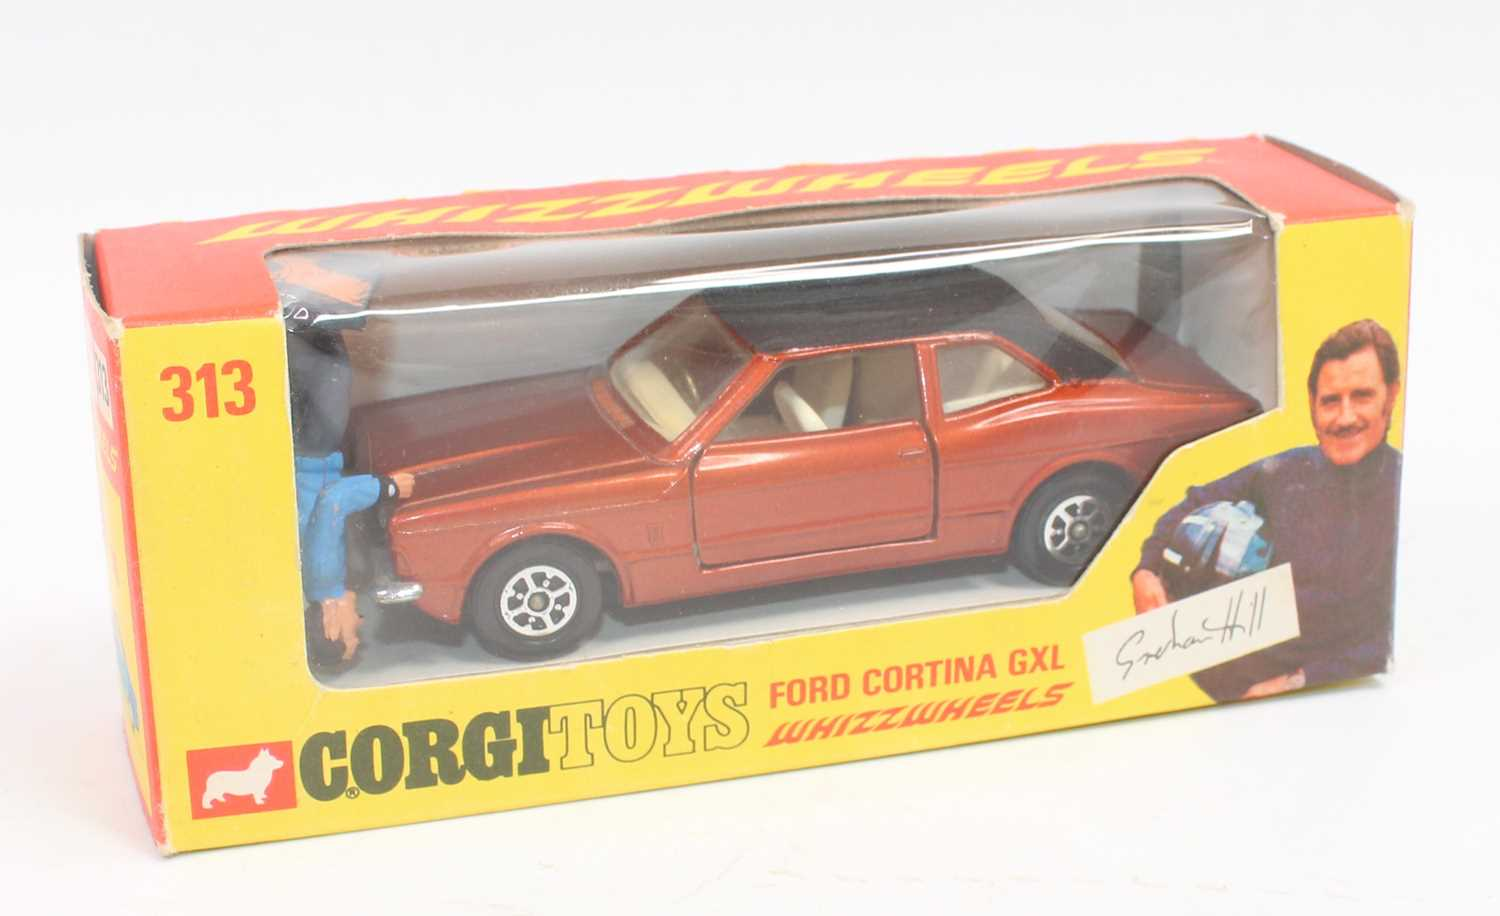 Corgi Toys 313, Ford Cortina in bronze complete with Graham Hill figure in near mint condition - Image 3 of 3